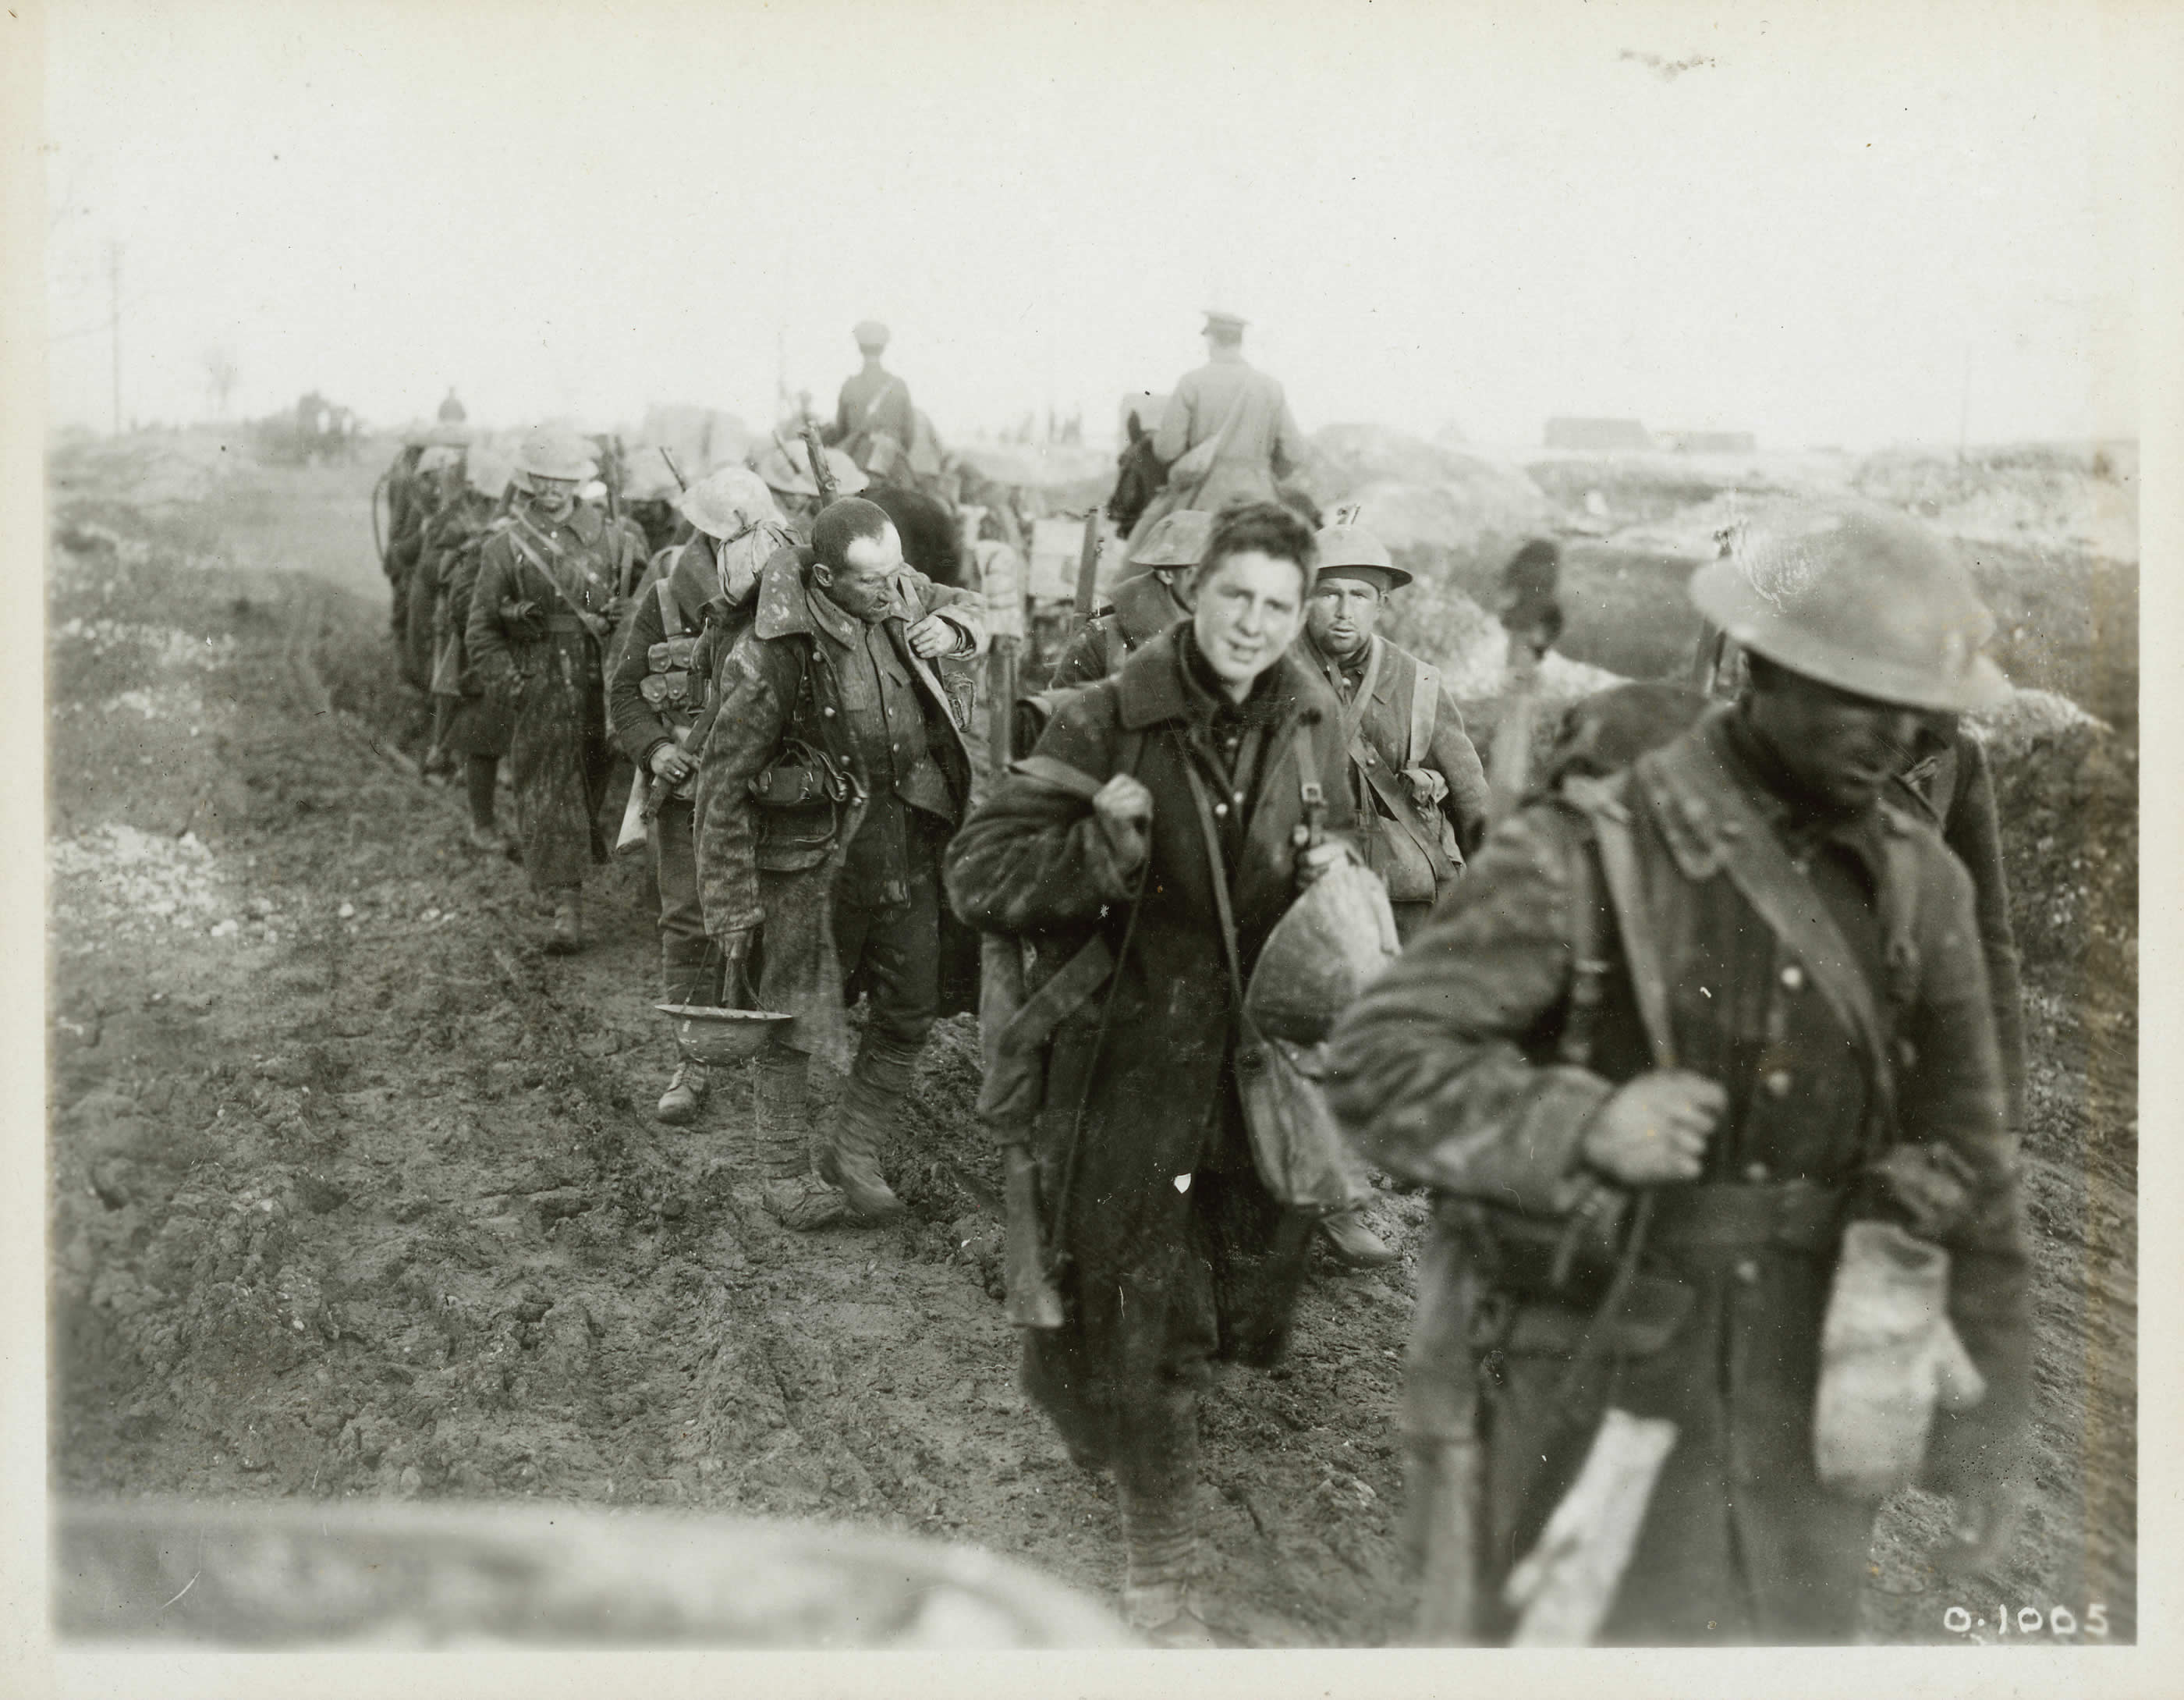 Canada and the First World War web site